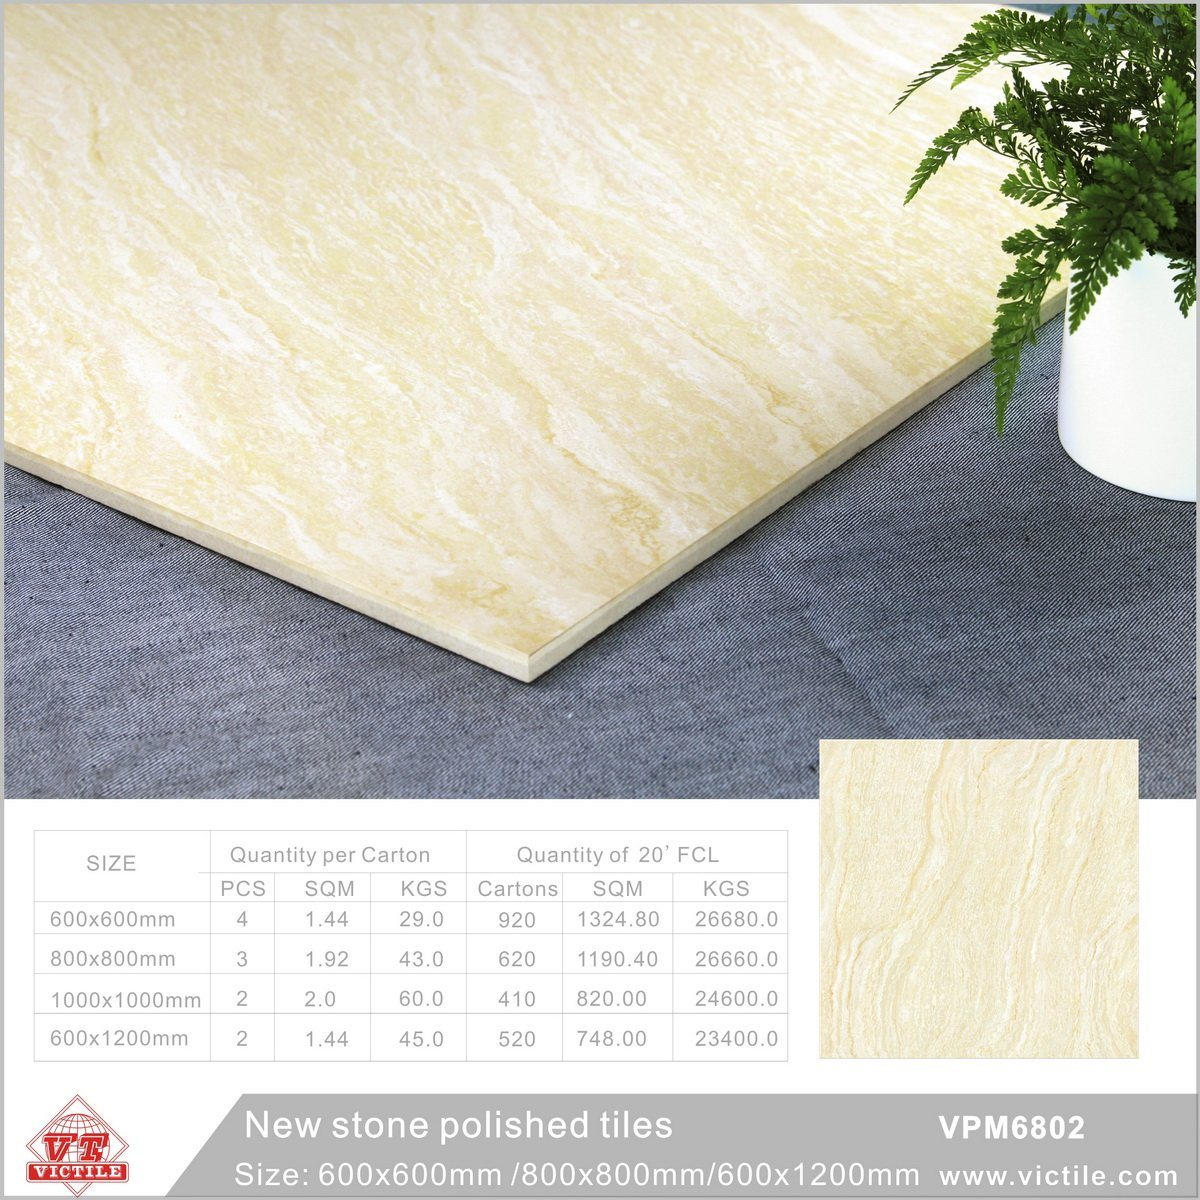 China building material porcelain polished ceramic light yellow building material porcelain polished ceramic light yellow new stone amazon floor tile vpm6802 600x600mm dailygadgetfo Choice Image